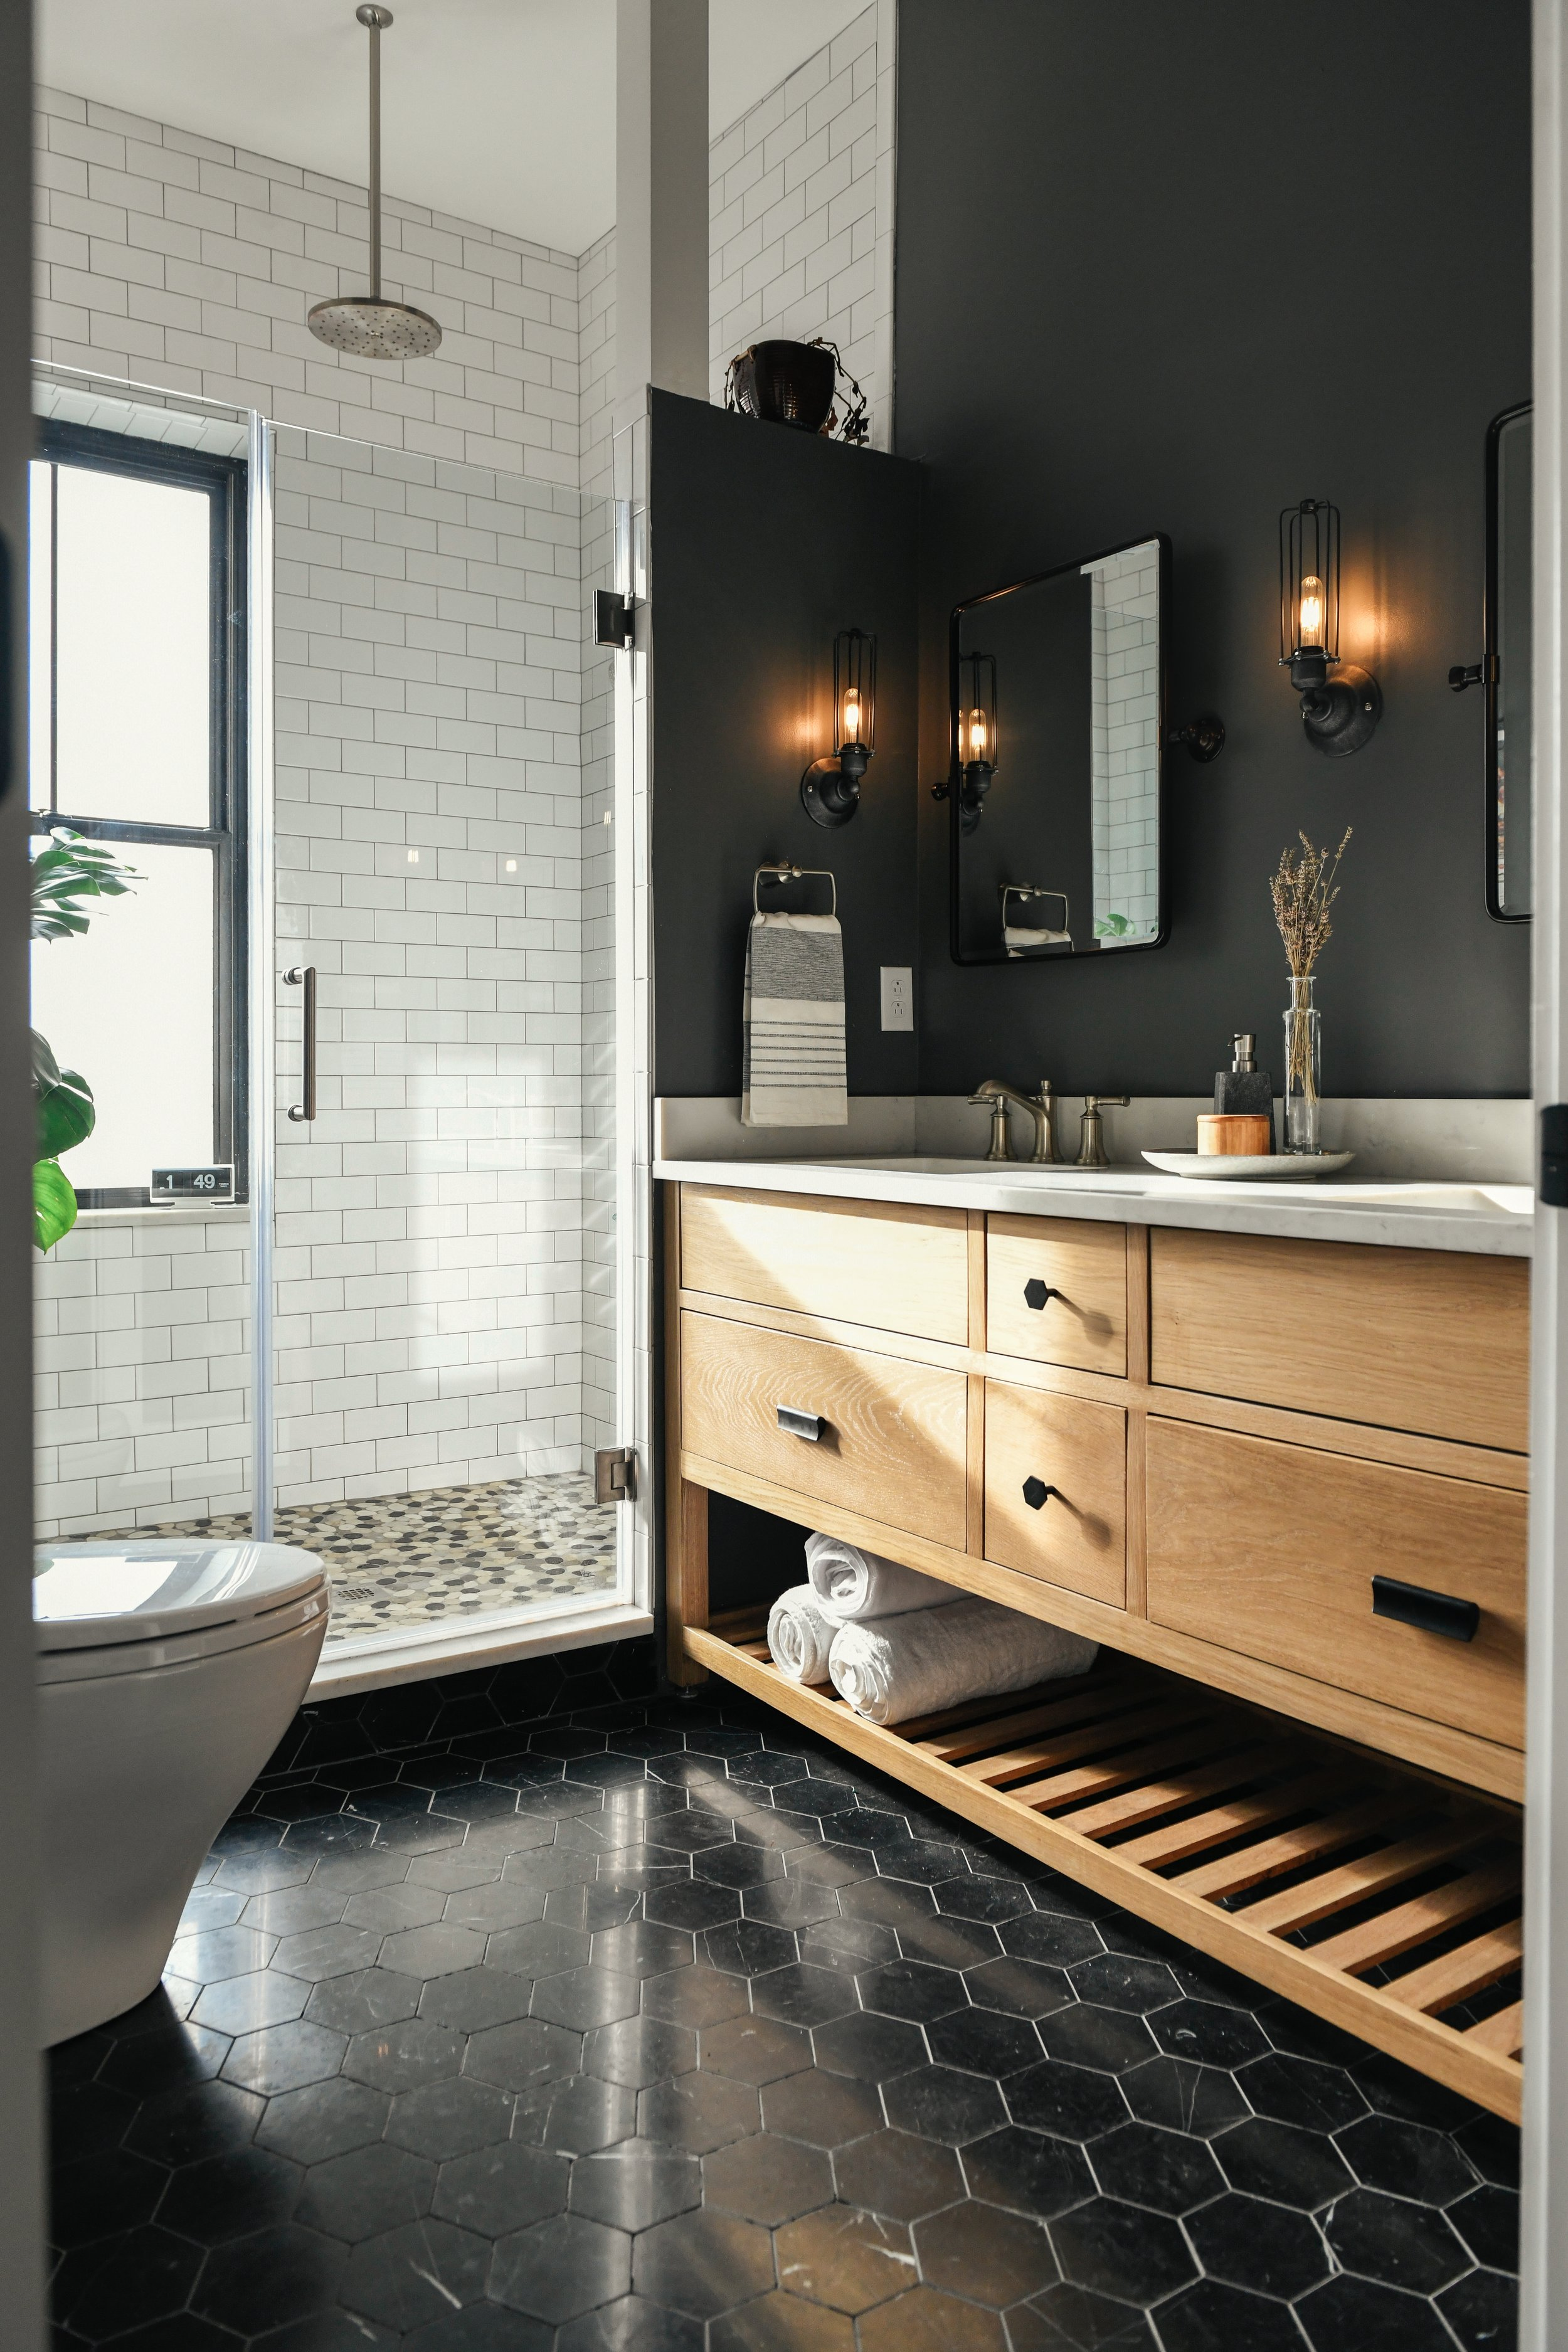 Katy Popple Design - Master Bathroom 1.jpeg